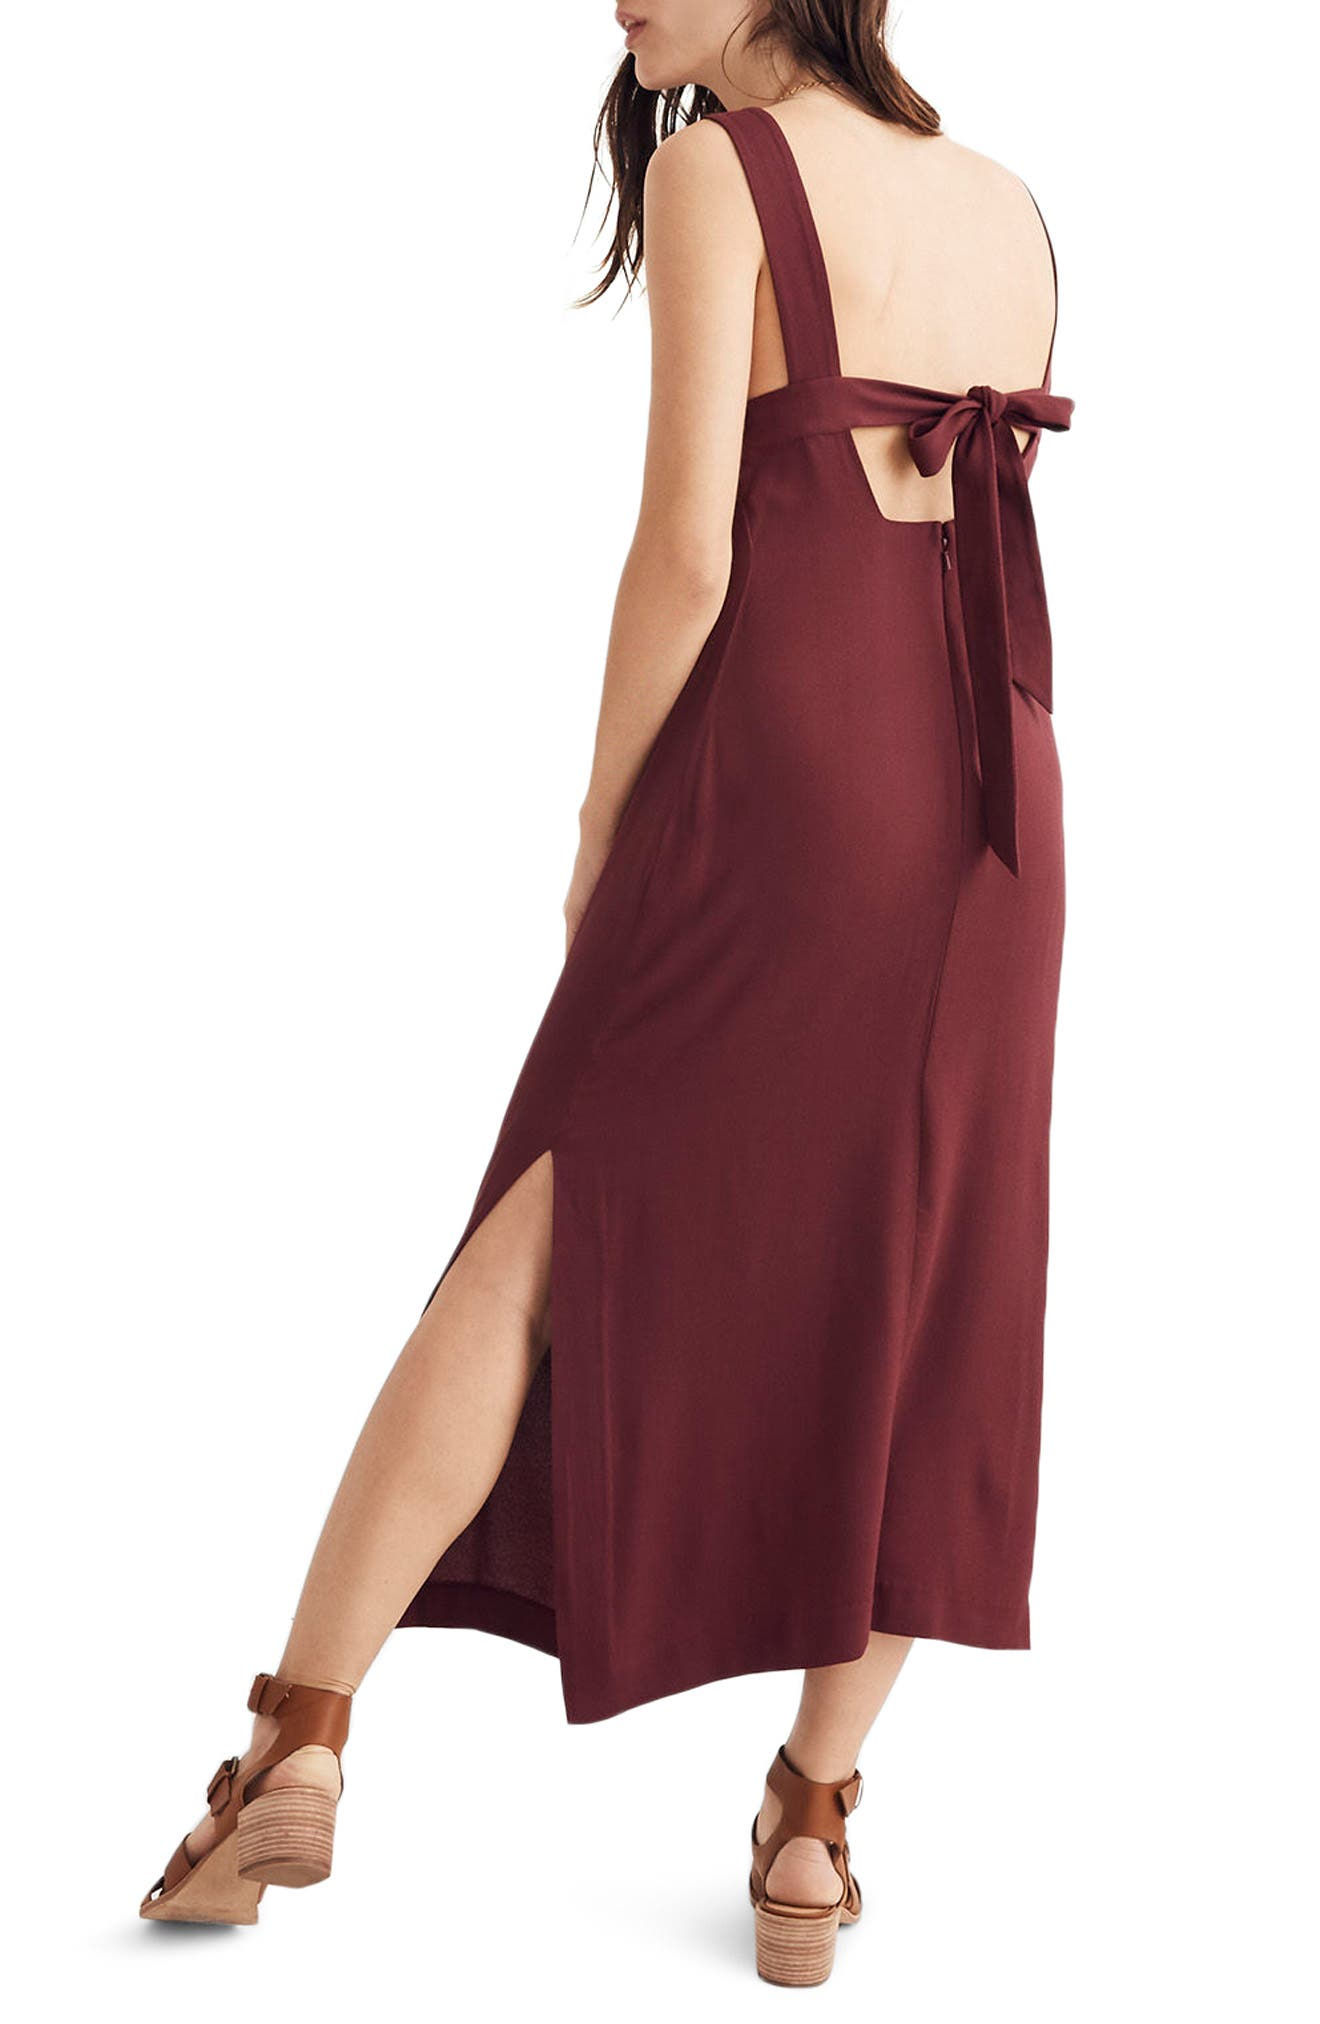 Apron Tie Back Dress,                         Main,                         color,